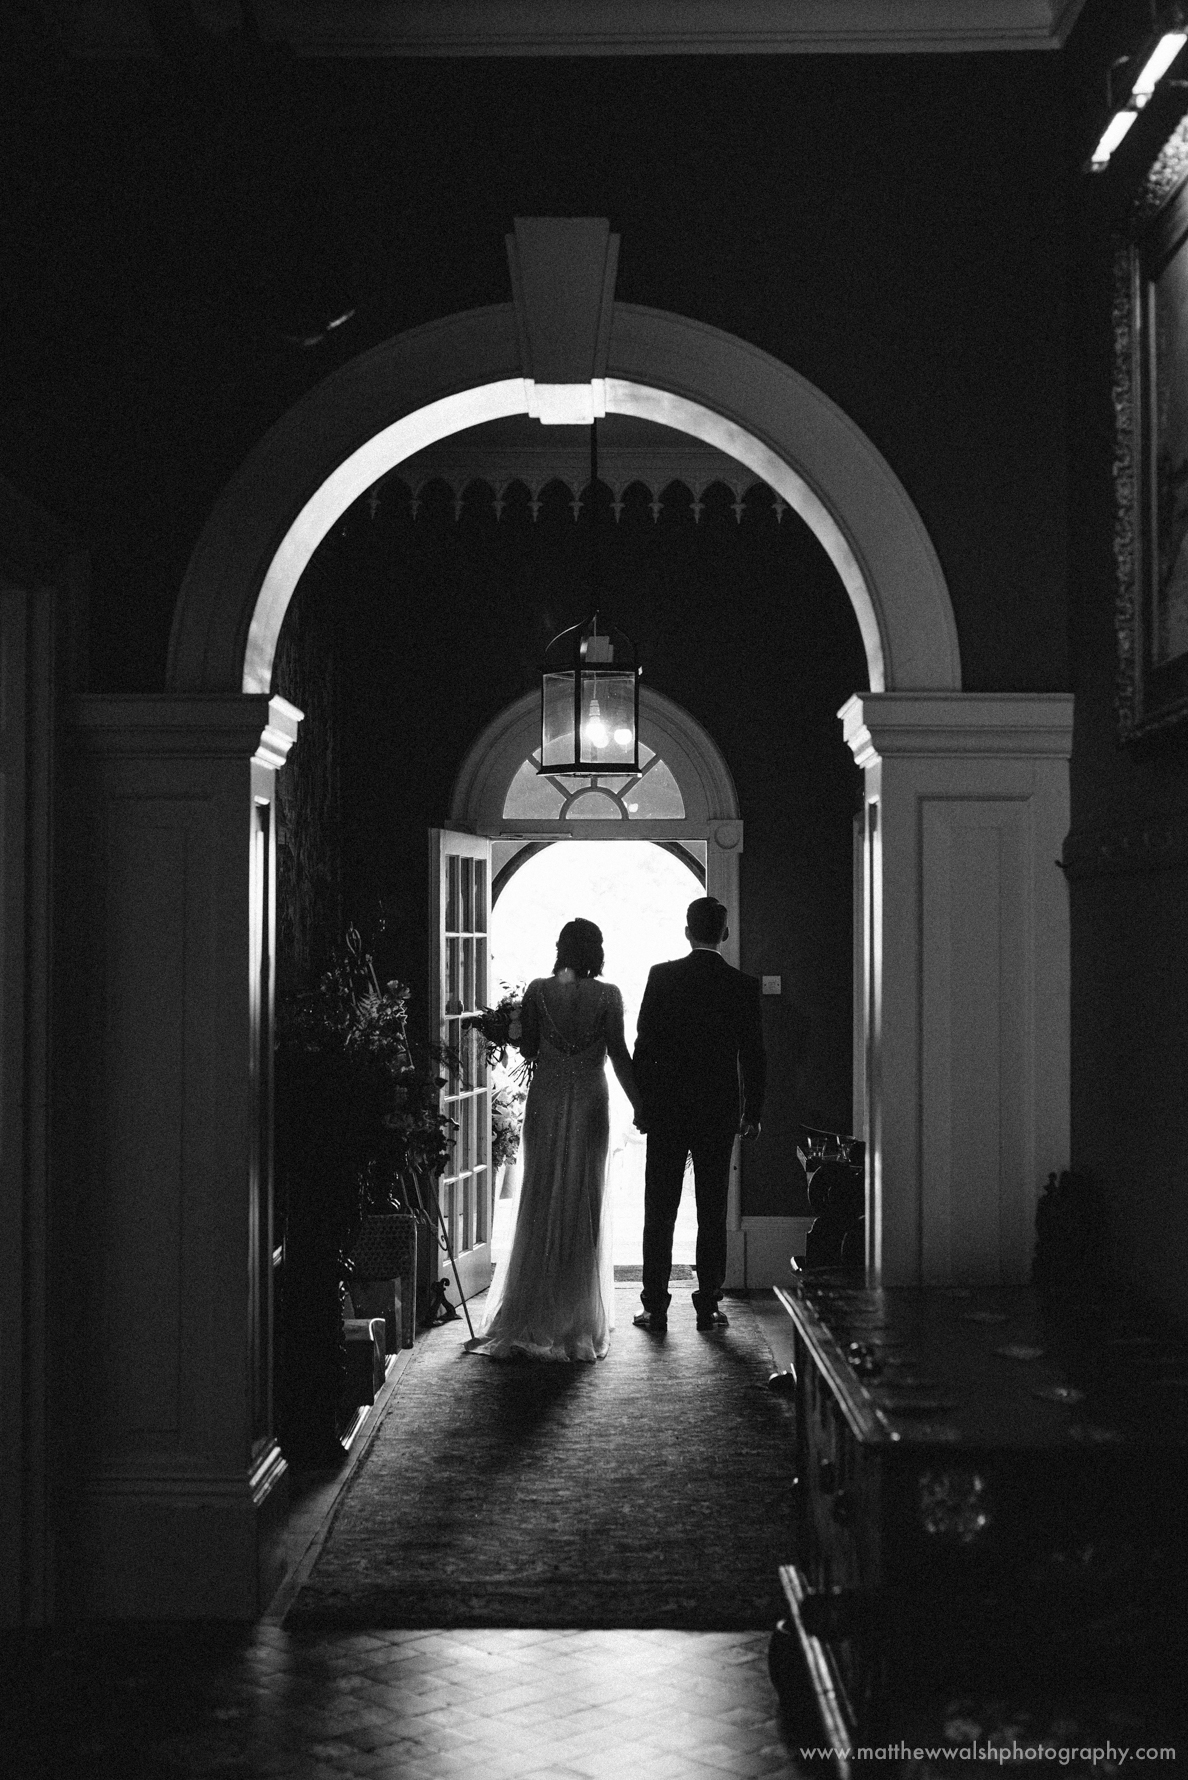 The happy couple prepare to exit the building perfect front lighting and silhouette